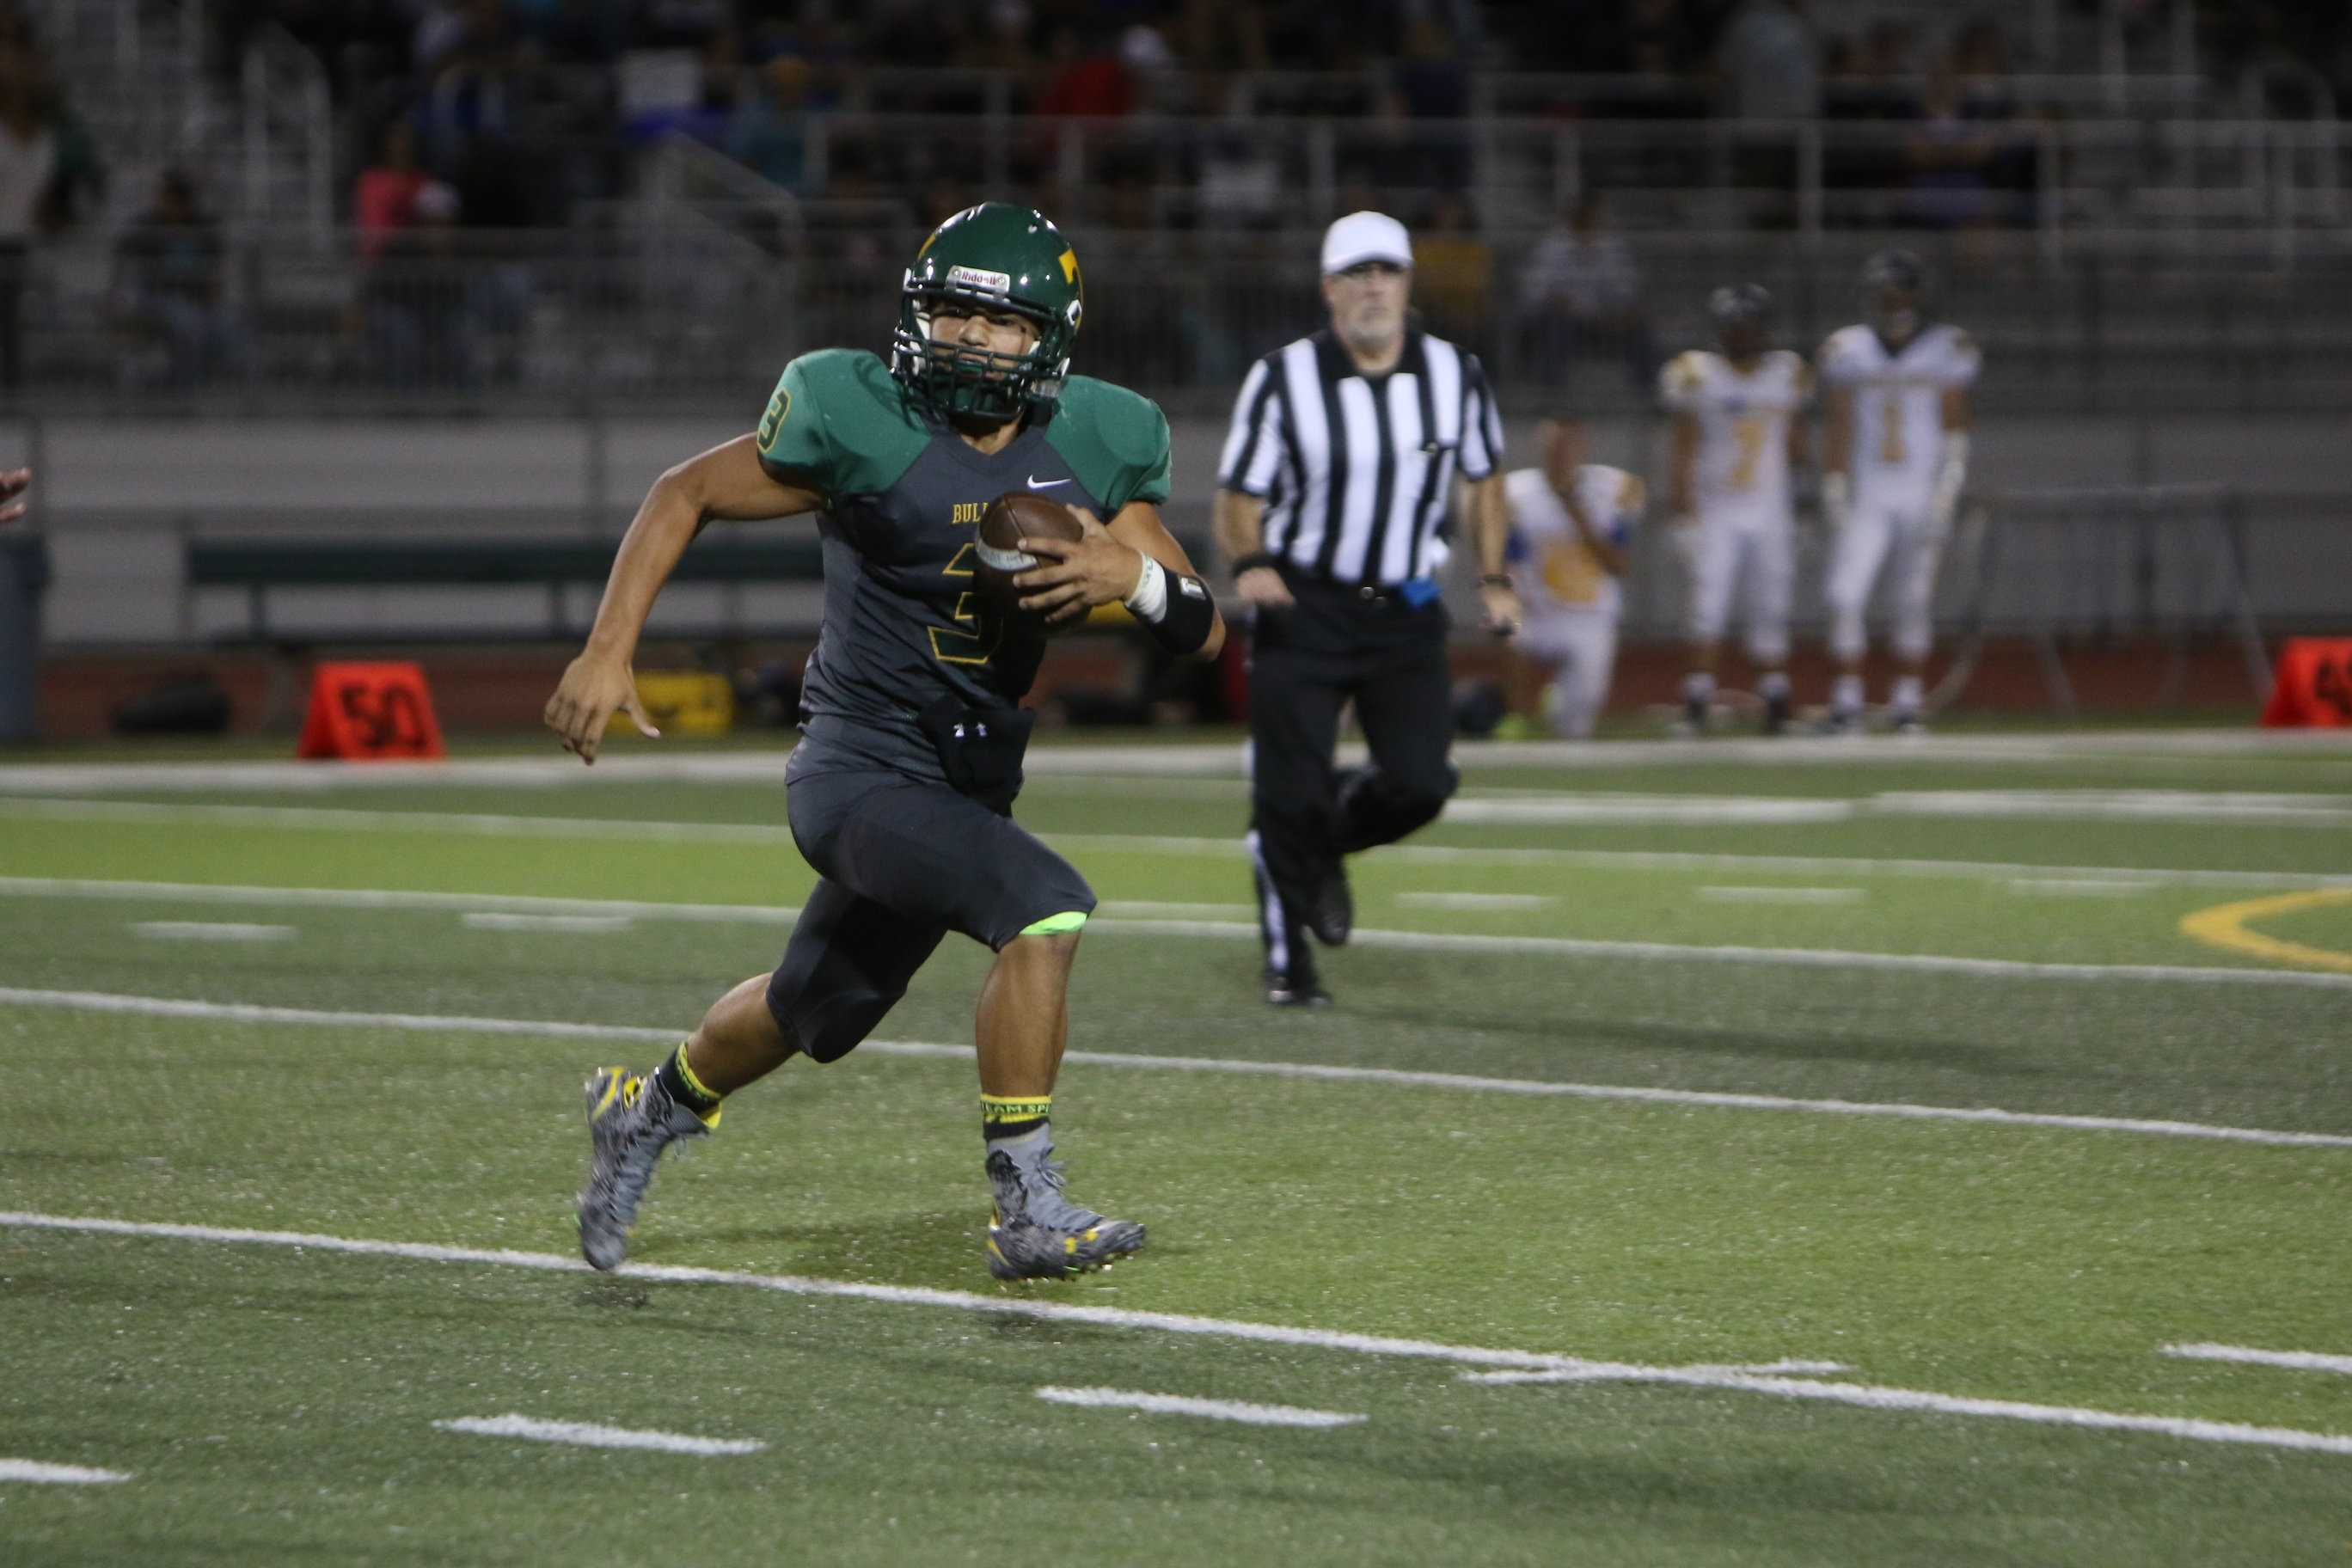 Tracy quarterback Josh Alvarado scrambles for yards during game against Turlock.